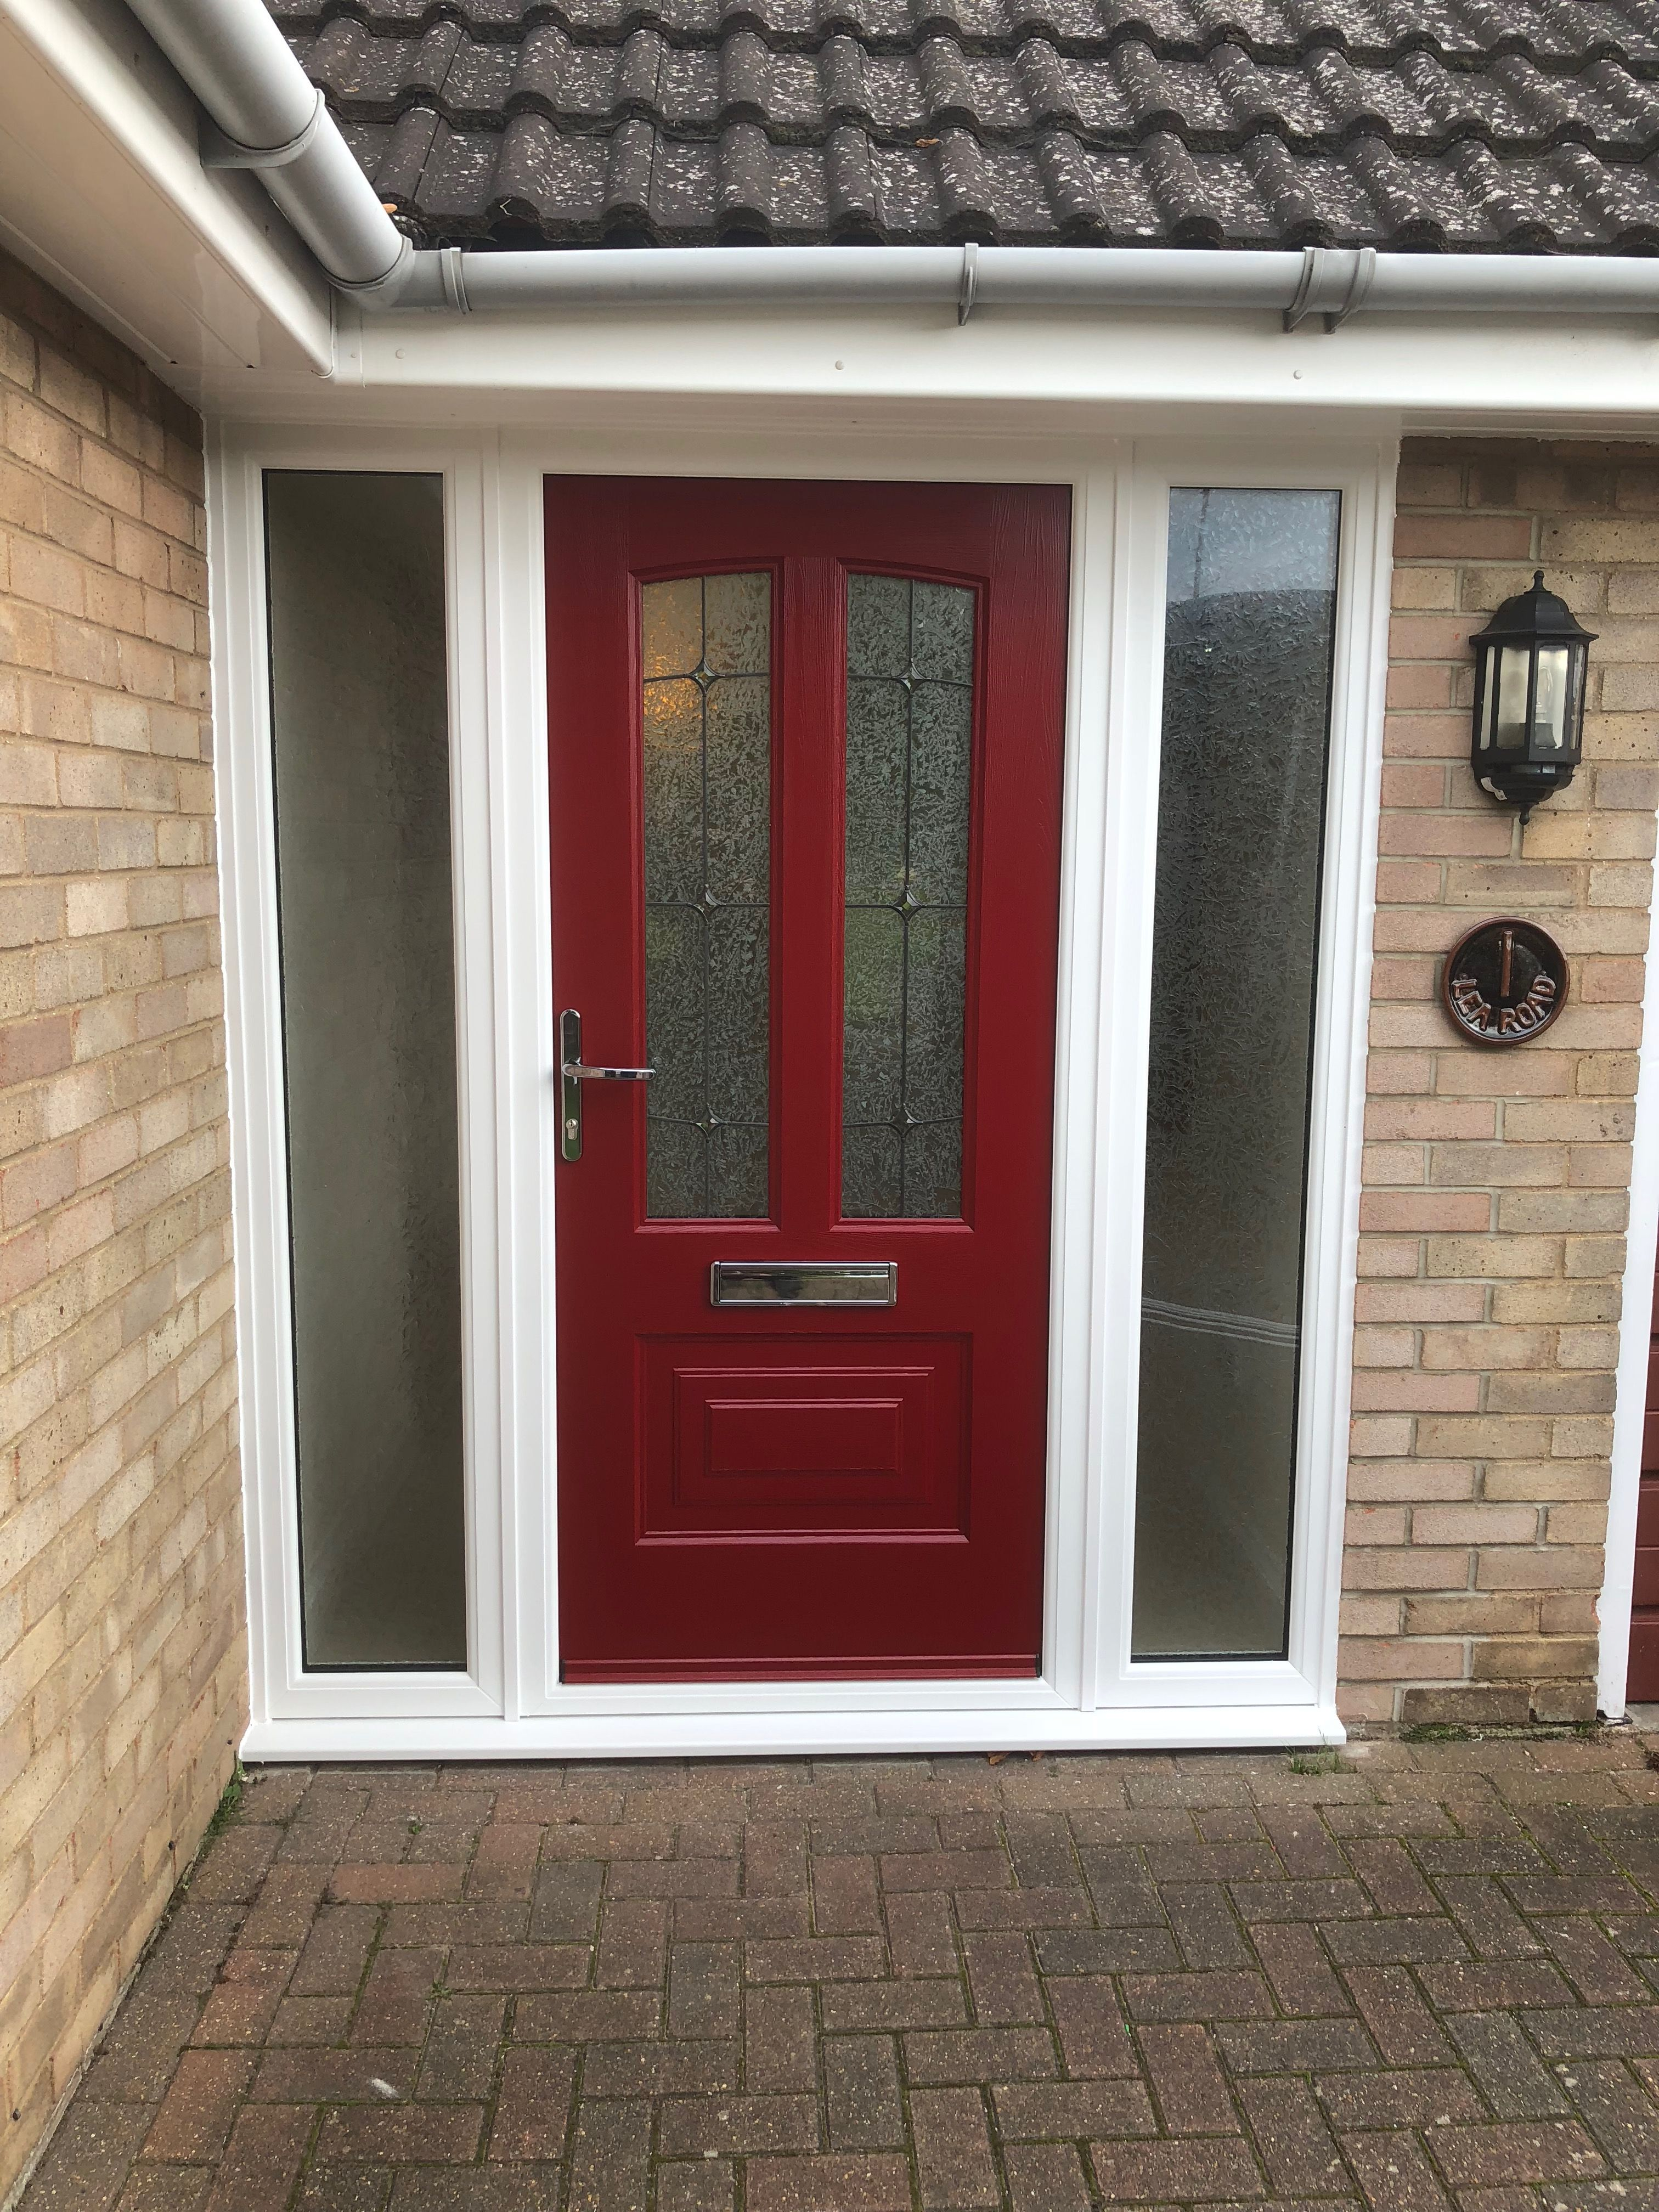 Rockdoor Illinois Trinity with Gluechip Glass in Red #Rockdoor #verysecuredoors #rockdoors #compositedoor & Rockdoor Illinois Trinity with Gluechip Glass in Red #Rockdoor ...